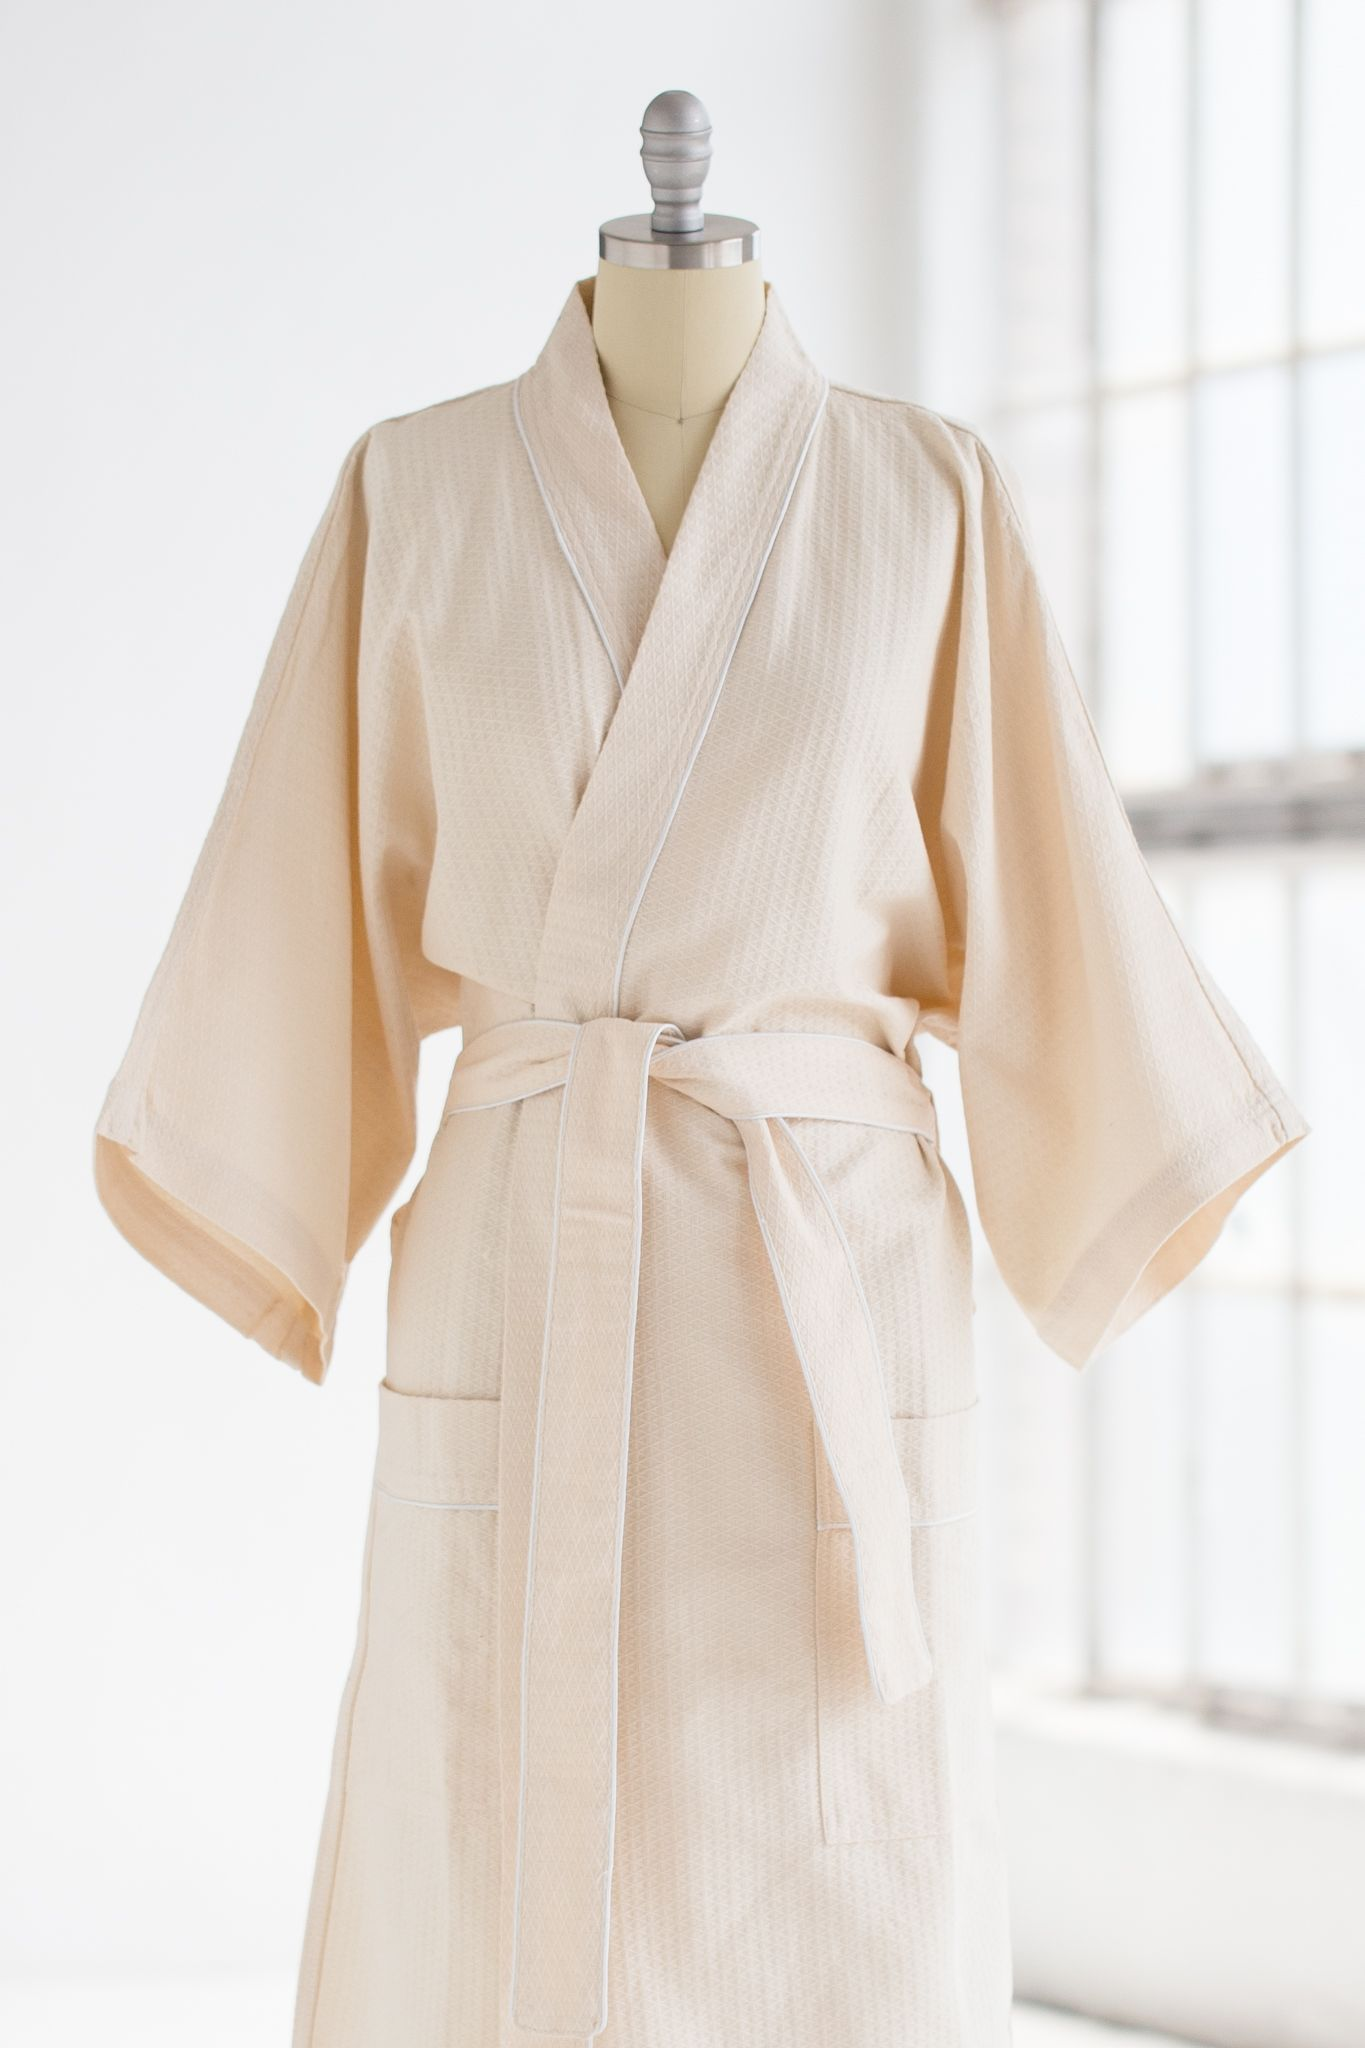 KIMONO WAFFLE SPA ROBE IN NATURAL 88.00 This lightweight waffle kimono spa  robe is a simple favorite. Single layer of 100% cotton waffle fabric b1af9da51